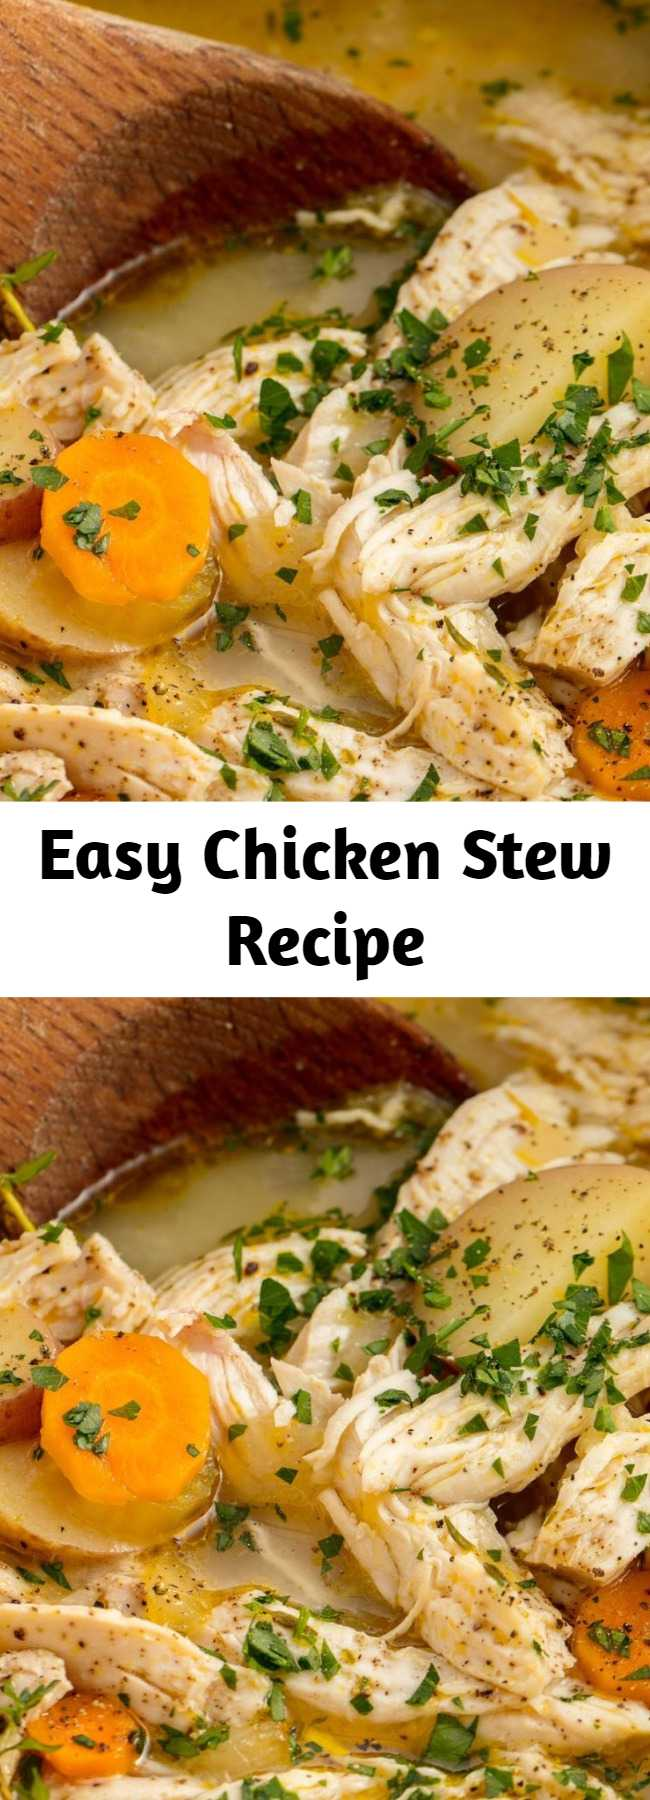 Easy Chicken Stew Recipe - Looking for a hearty, healthy dinner? This chicken stew takes under an hour, but it tastes like it's been simmering on the stove for hours.  It has all of the comfort and none of the work. #recipe #easy #easyrecipes #chicken #stew #soup #comfort #food #comfortfood #carrots #potatoes #winter